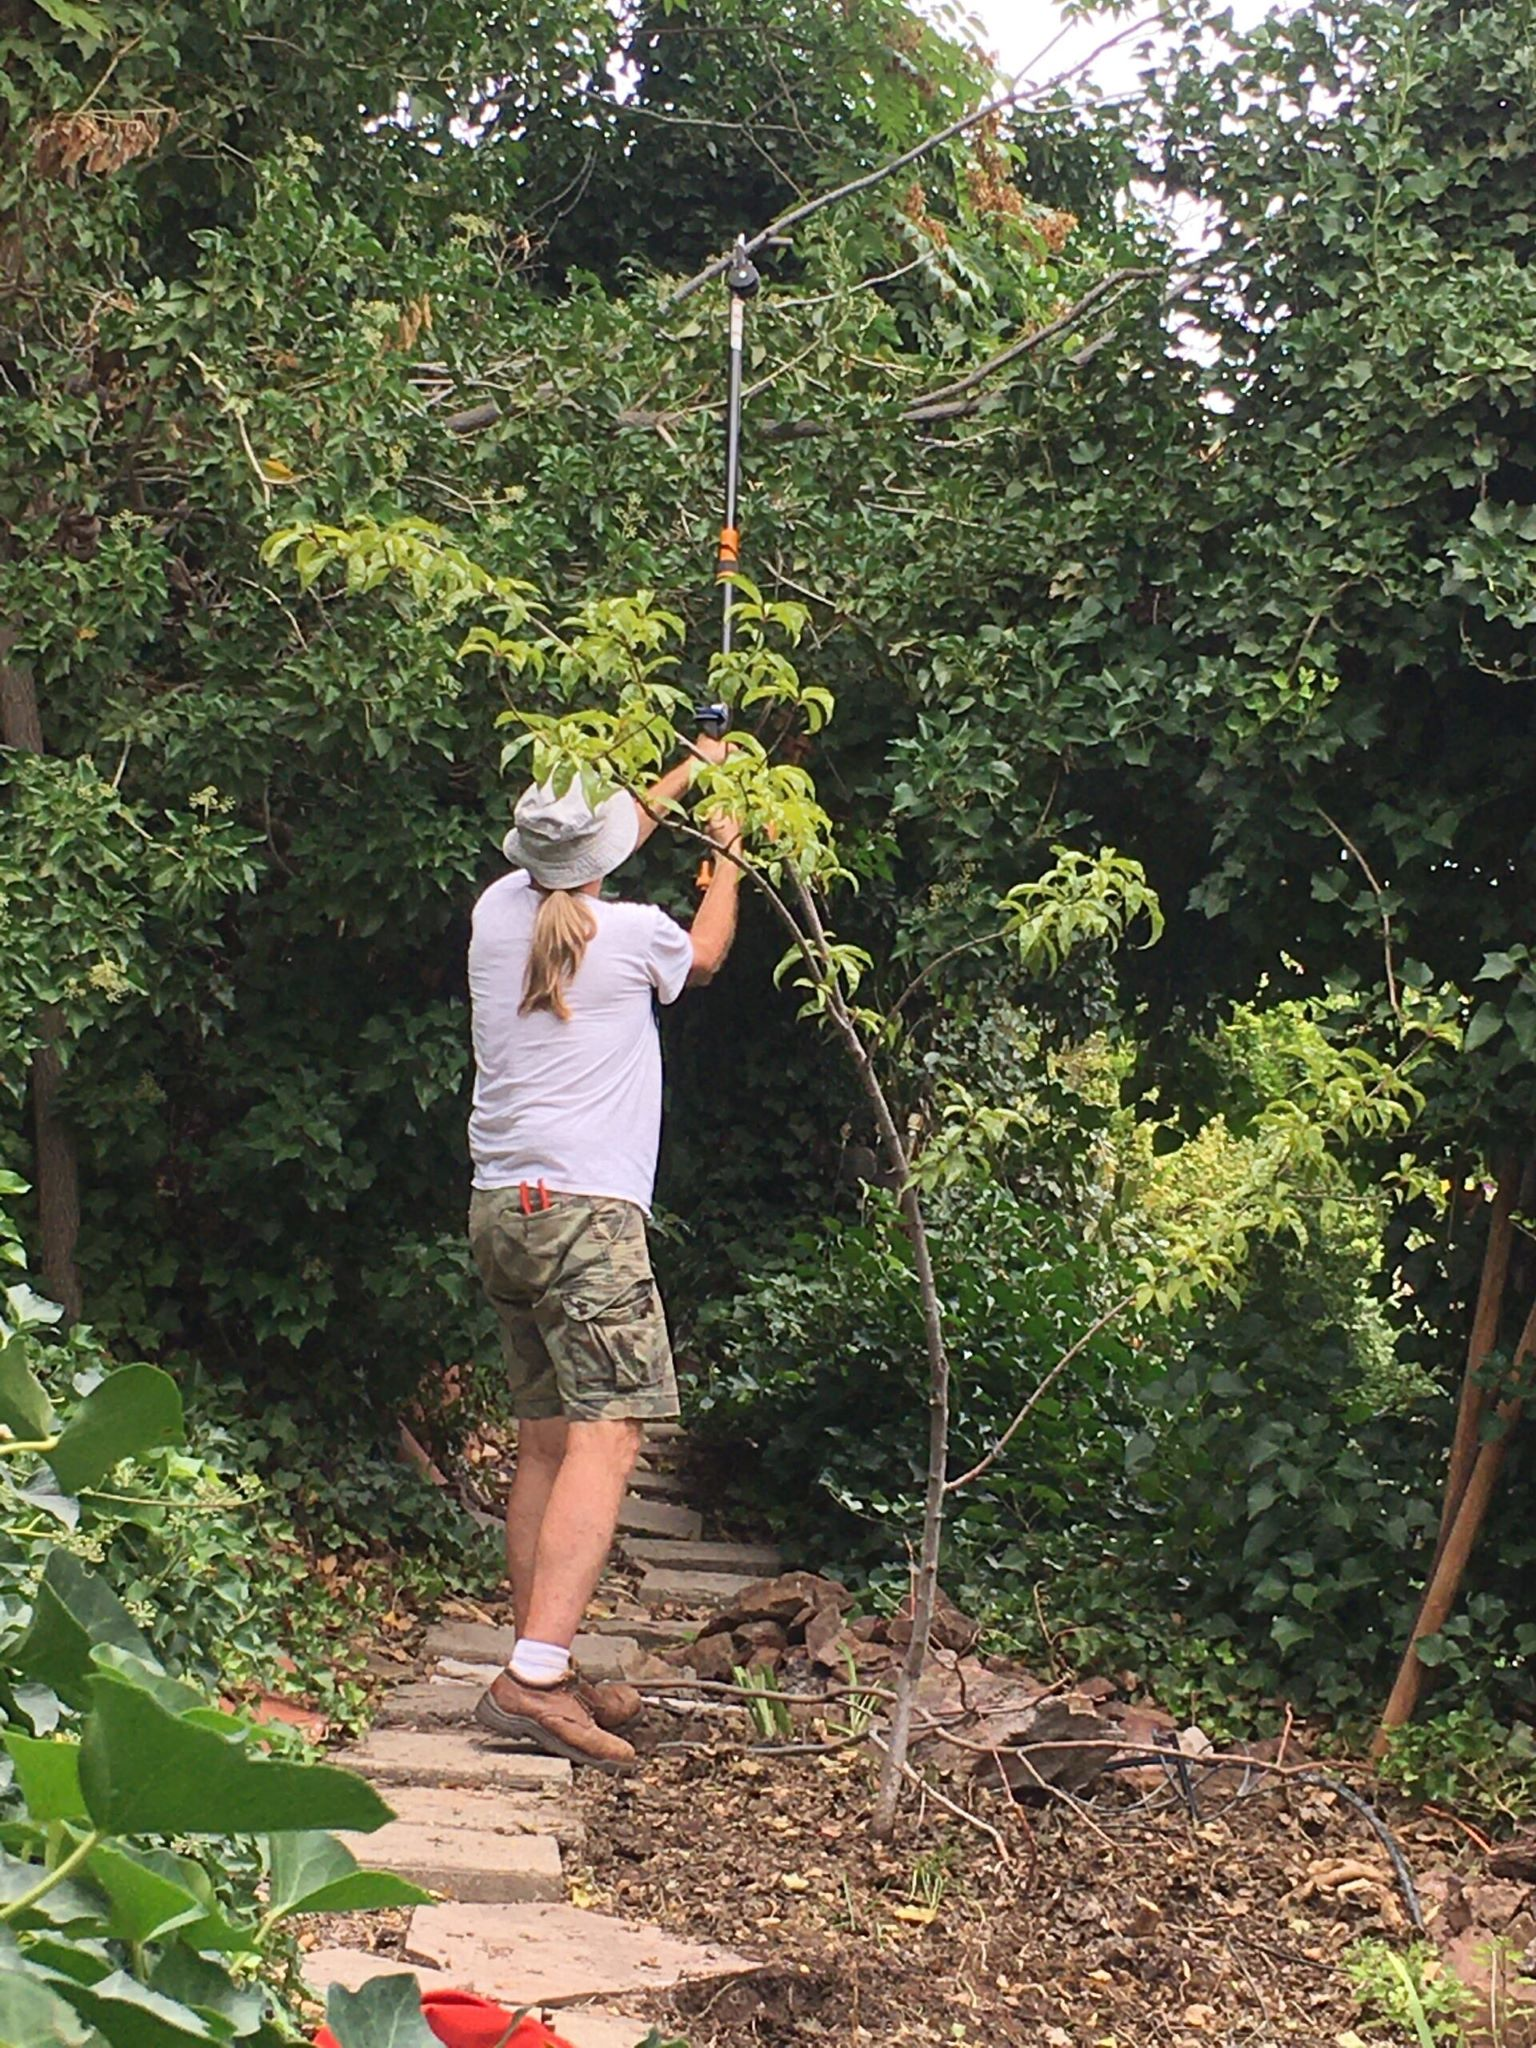 Trimming more ivy